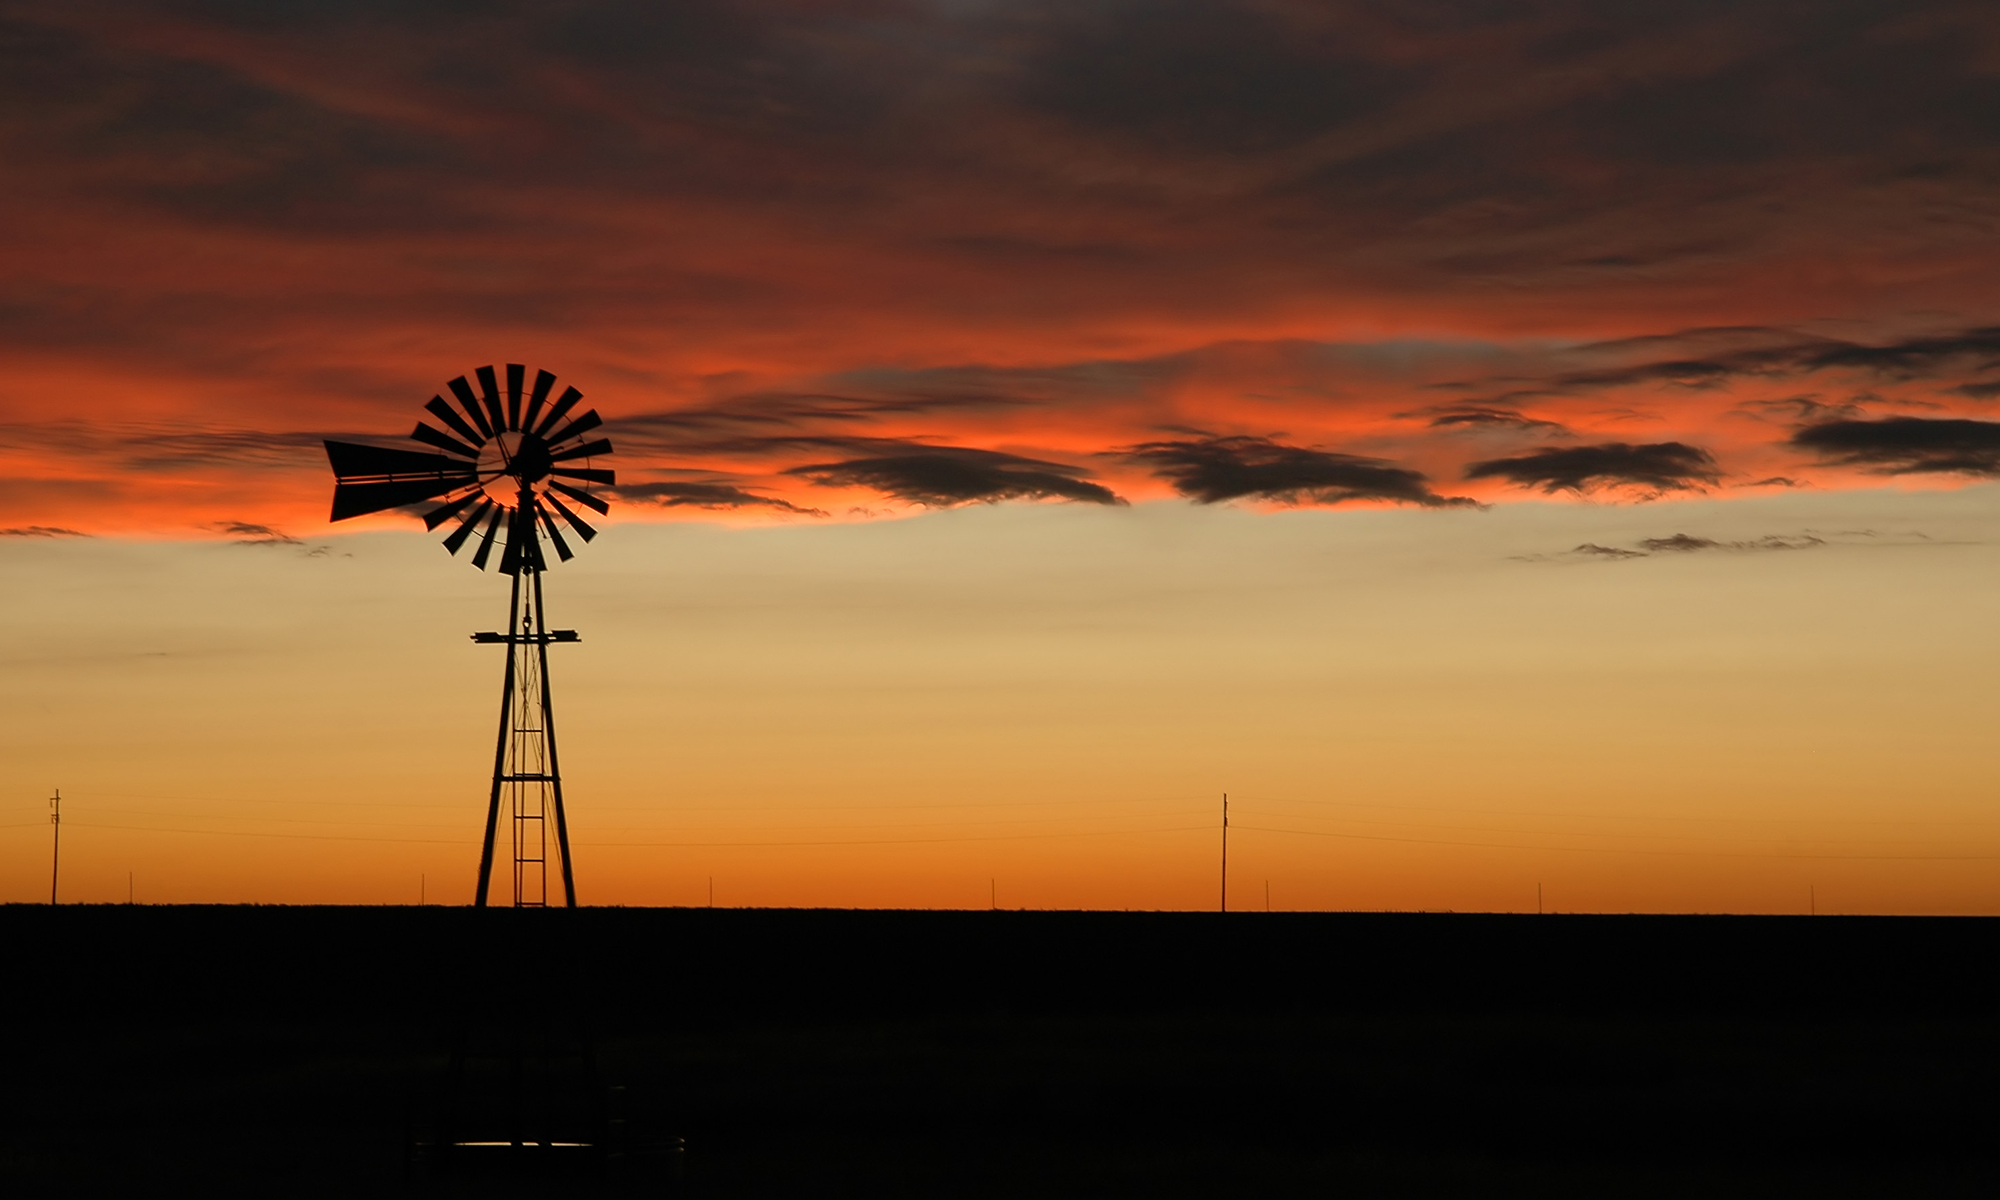 Oklahoma Windmill at Sunset